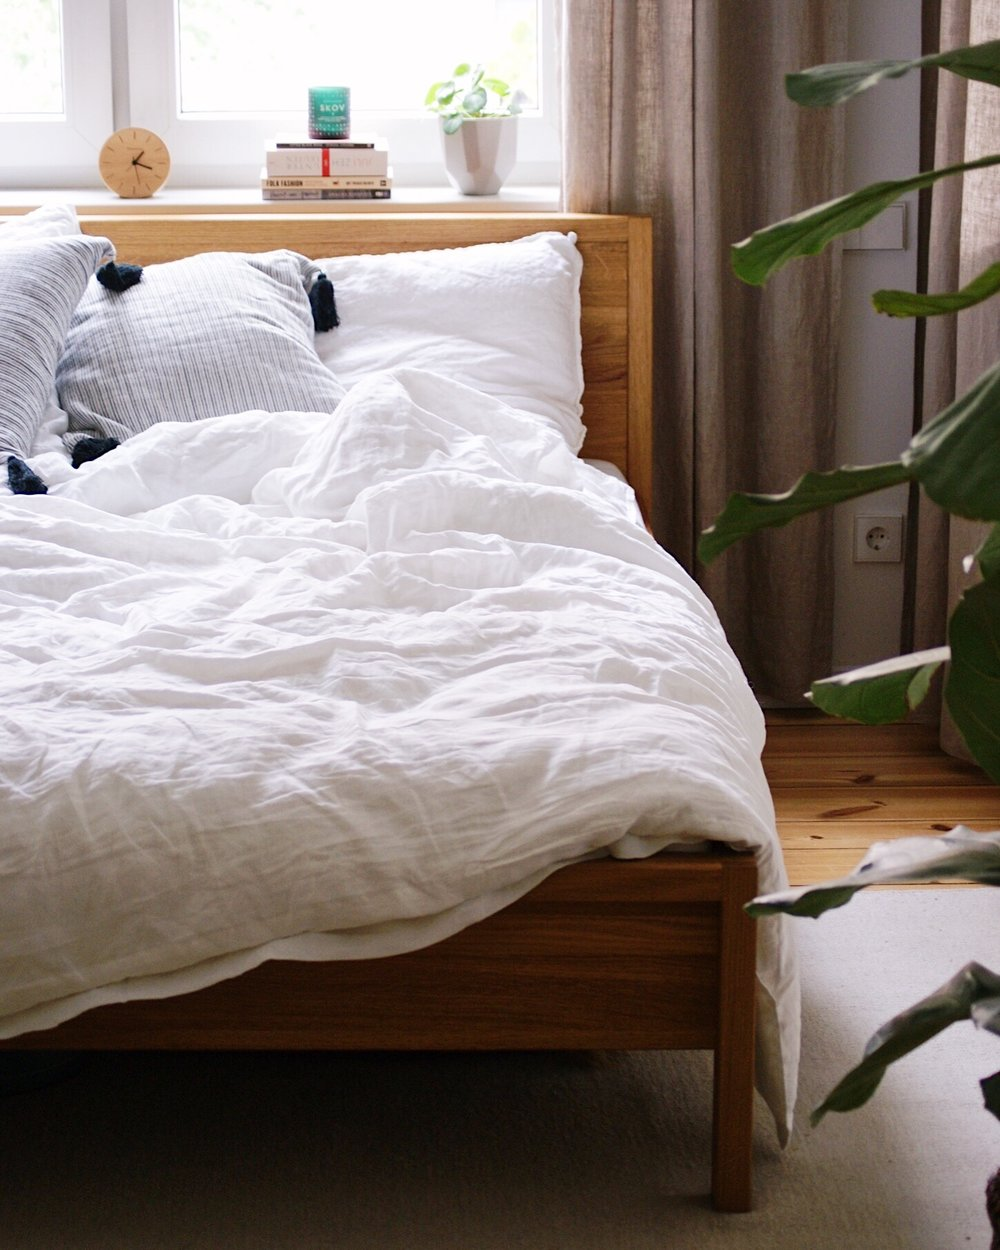 In Bed With Wool from Sustainablist